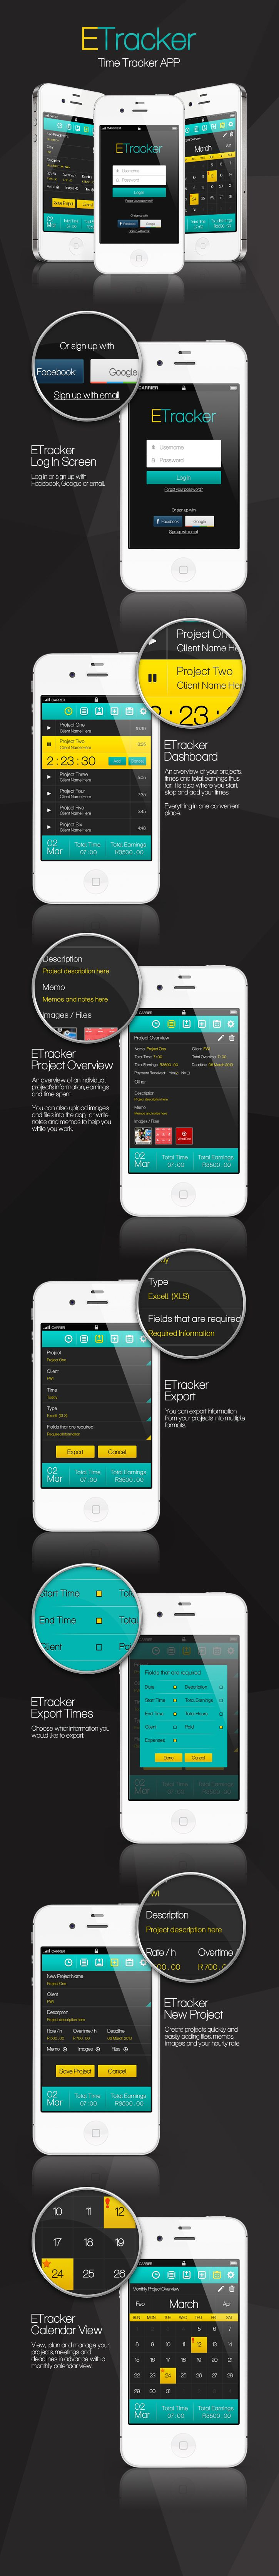 best period tracker app iphone 2013